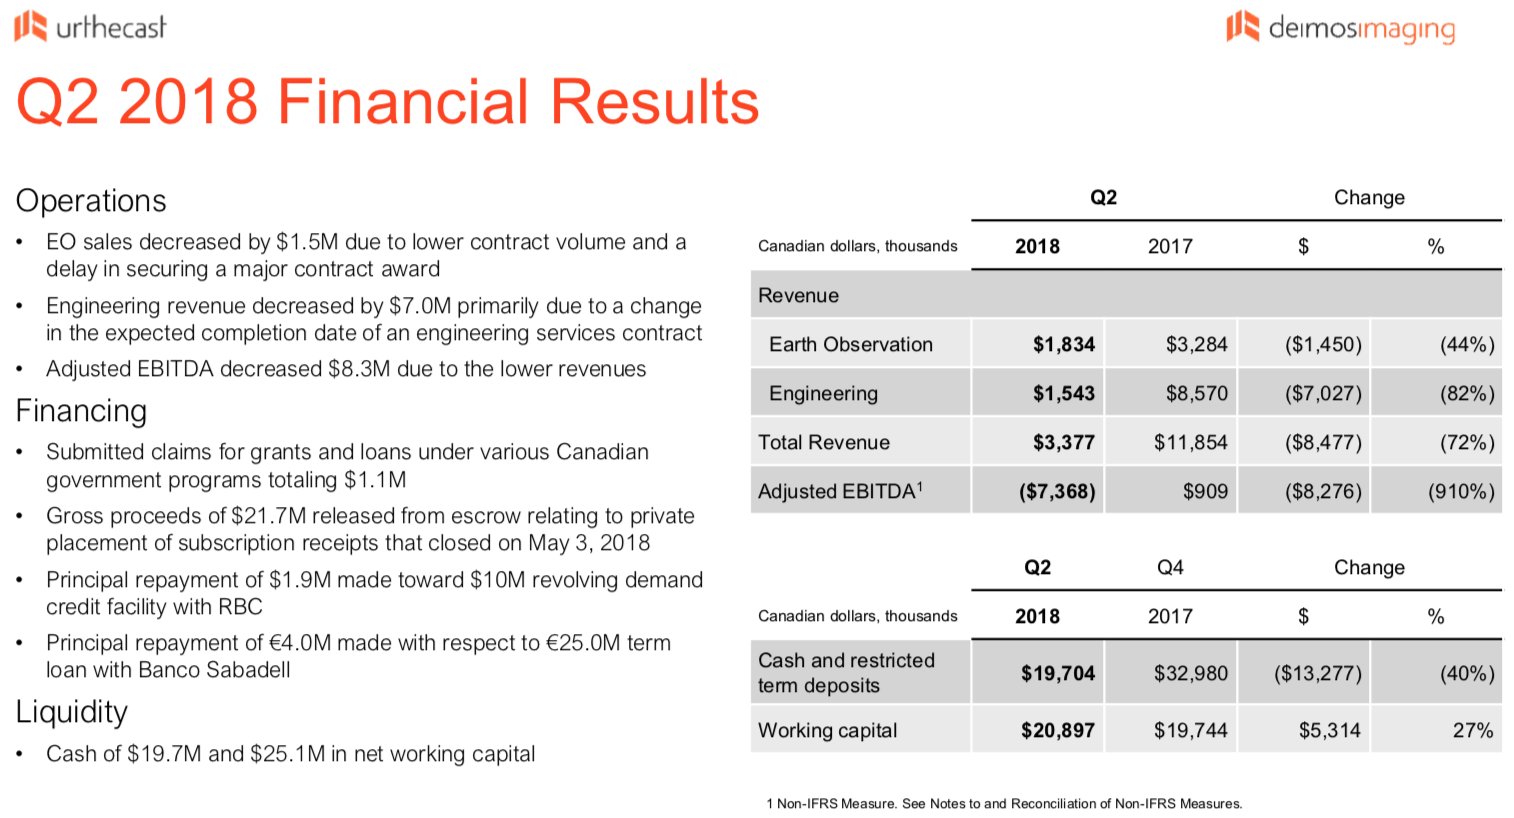 UrtheCast Q2 Financial Results